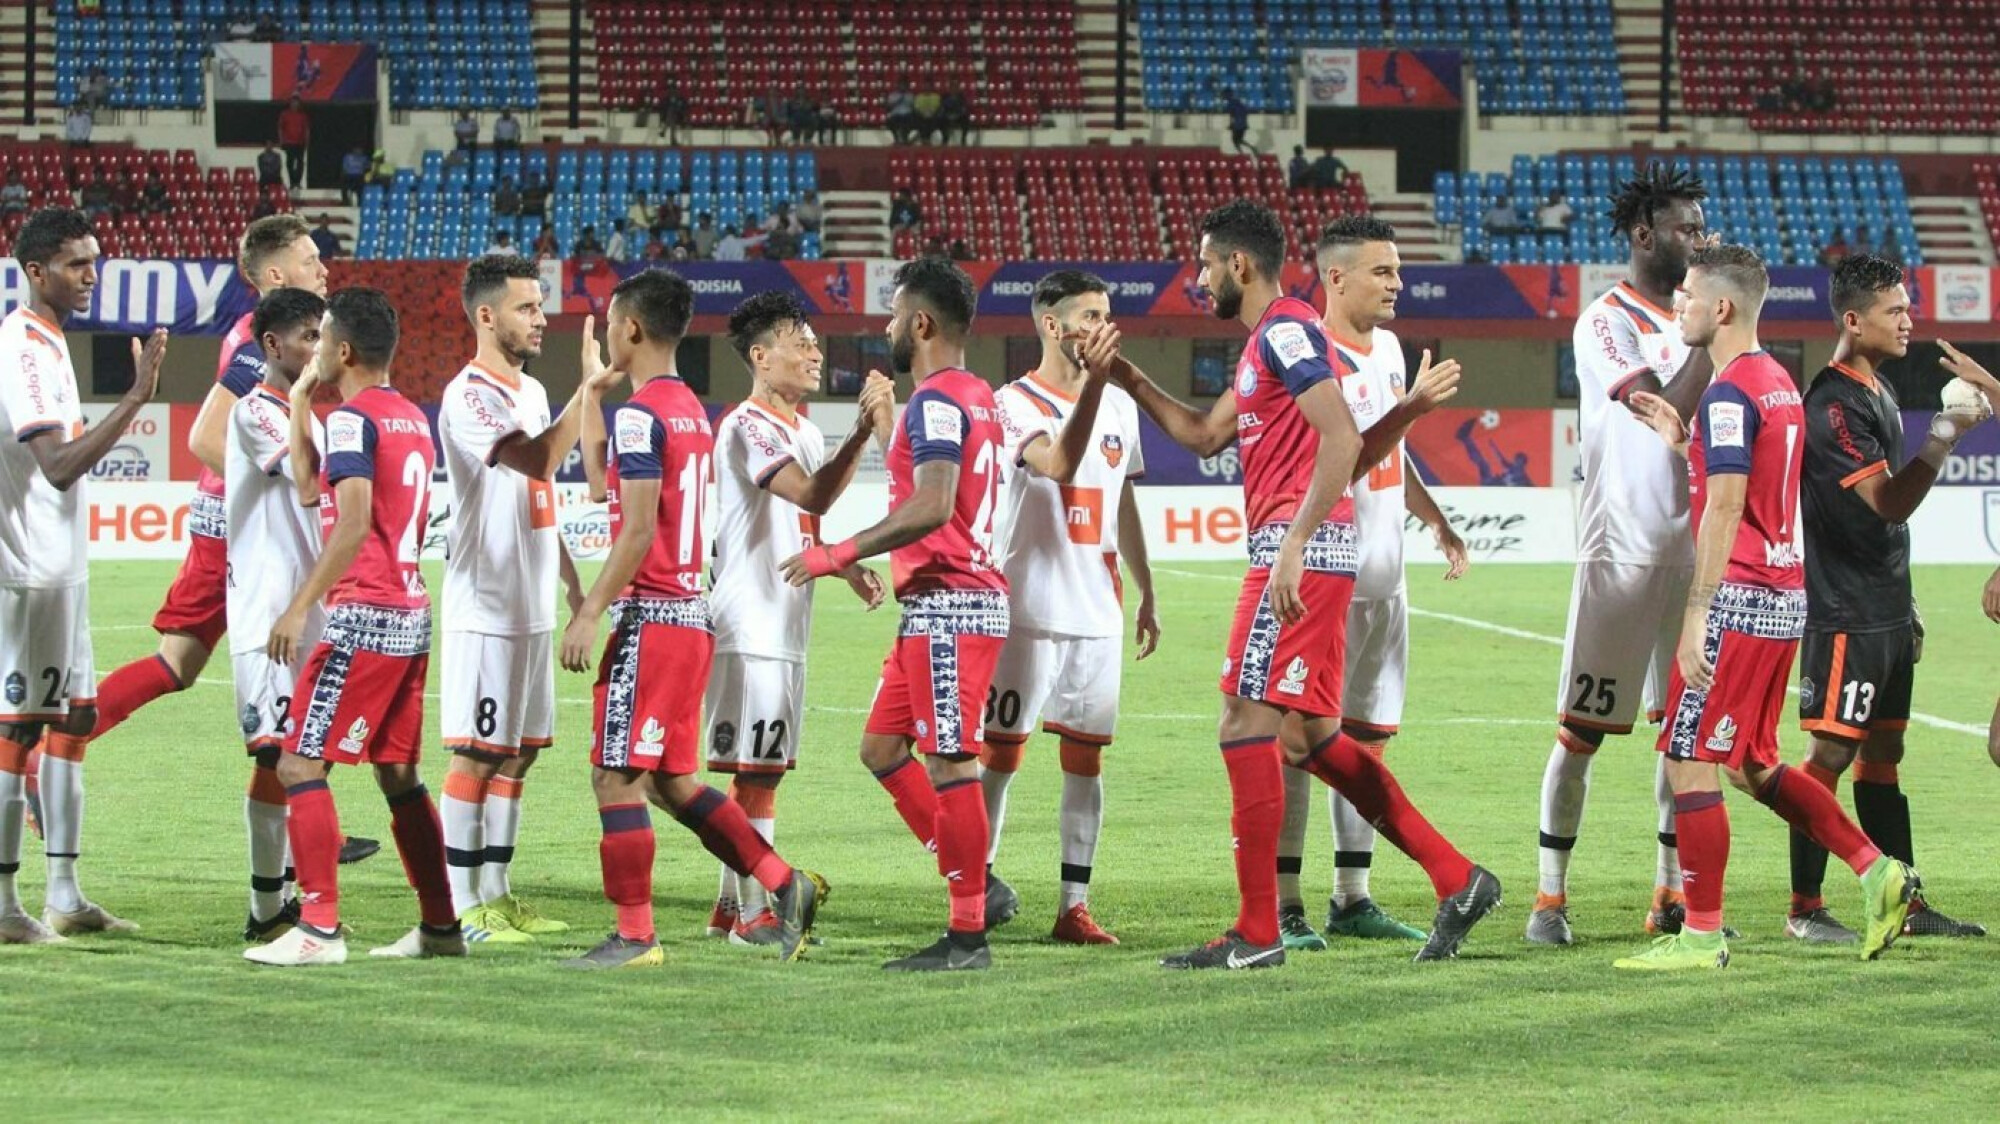 Super Cup 2019: Goa edge out Jamshedpur to march into semis